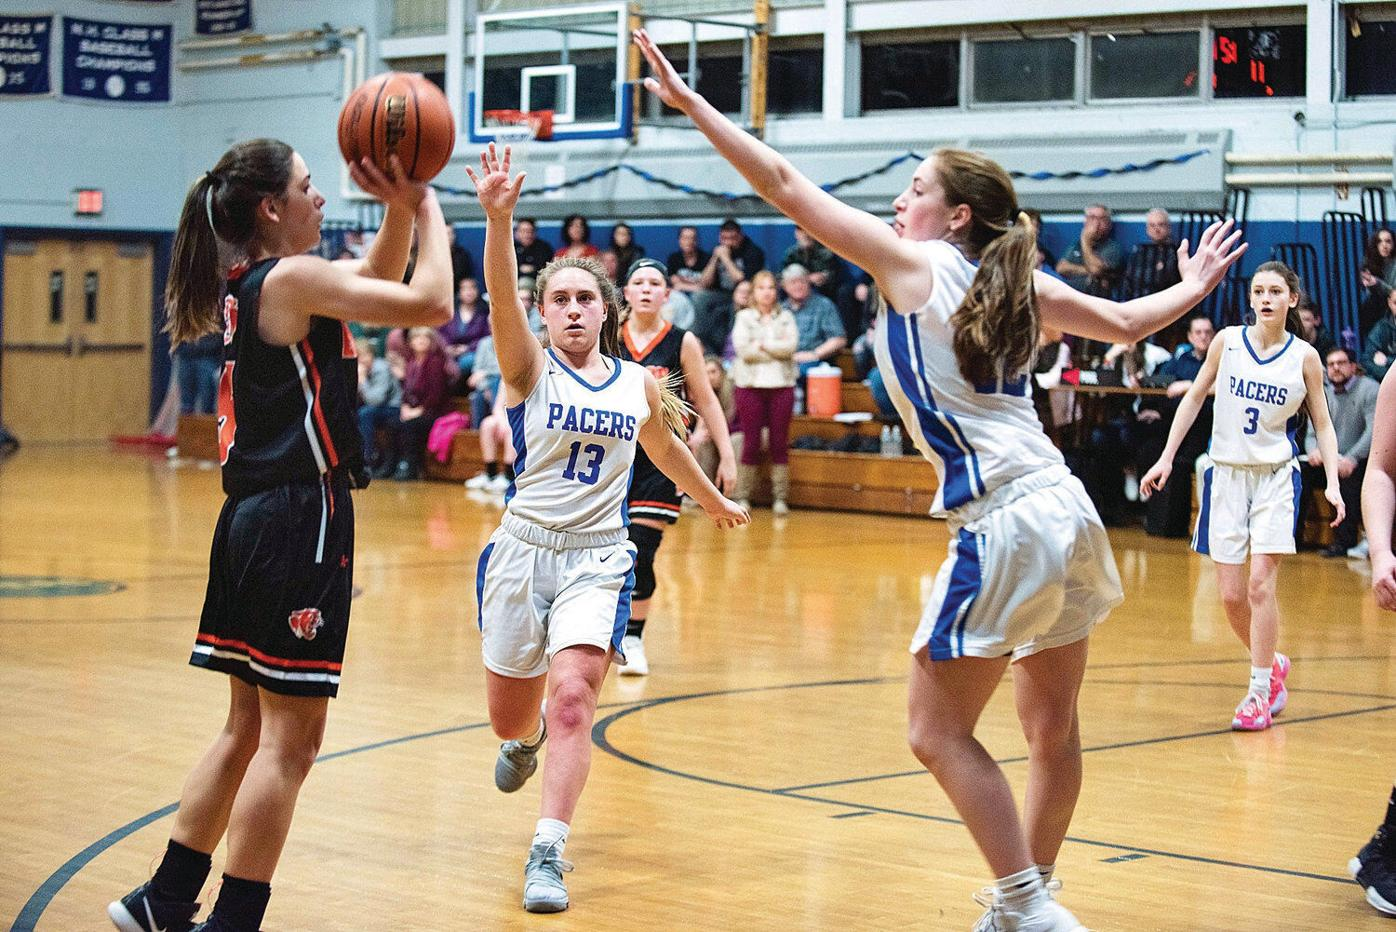 Lady Pacers advance to Final 4